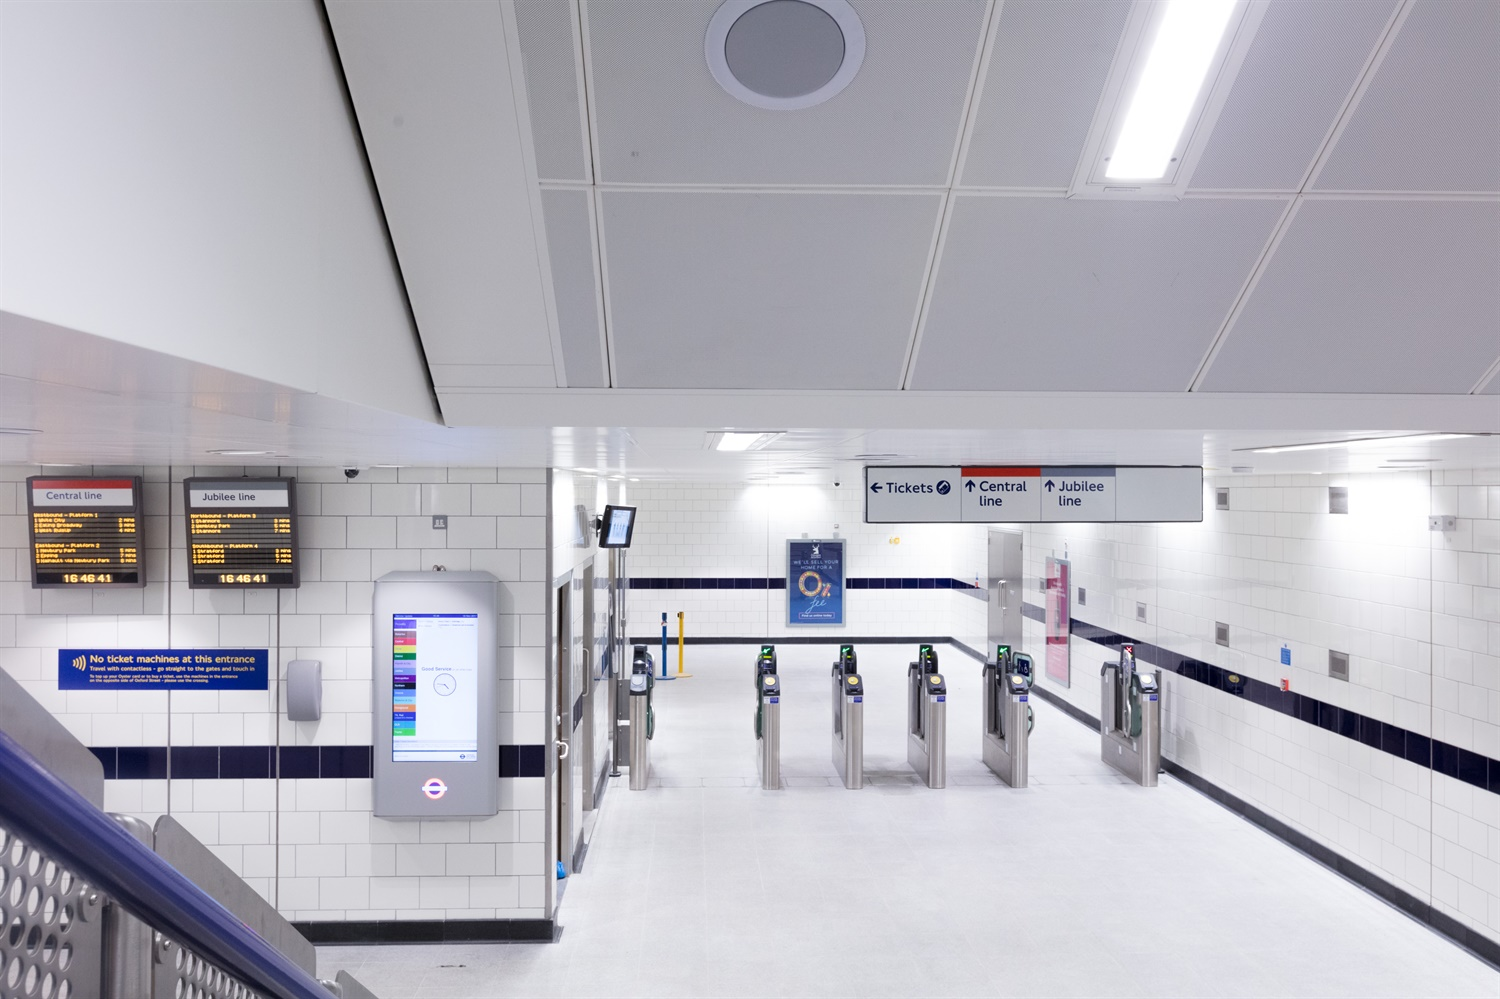 Bond-street---new-ticket-gate c. TfL